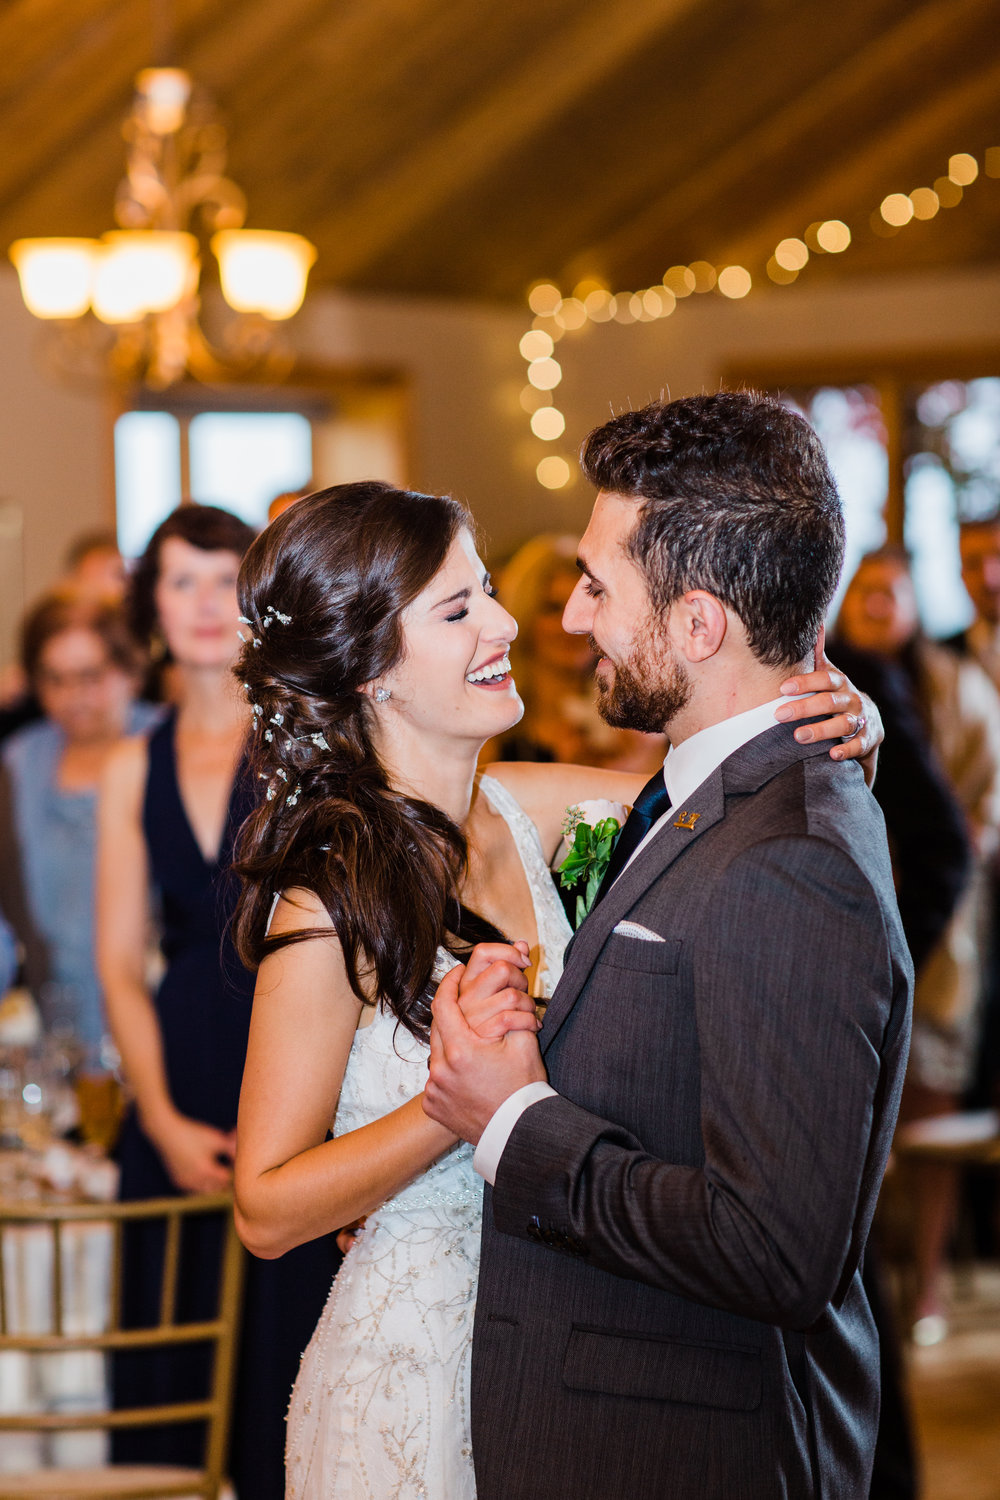 Amir-Golbazi-Danielle-Giroux-Photography_Toronto-Wedding_Cedarwood_Rachel-Paul_606.jpg